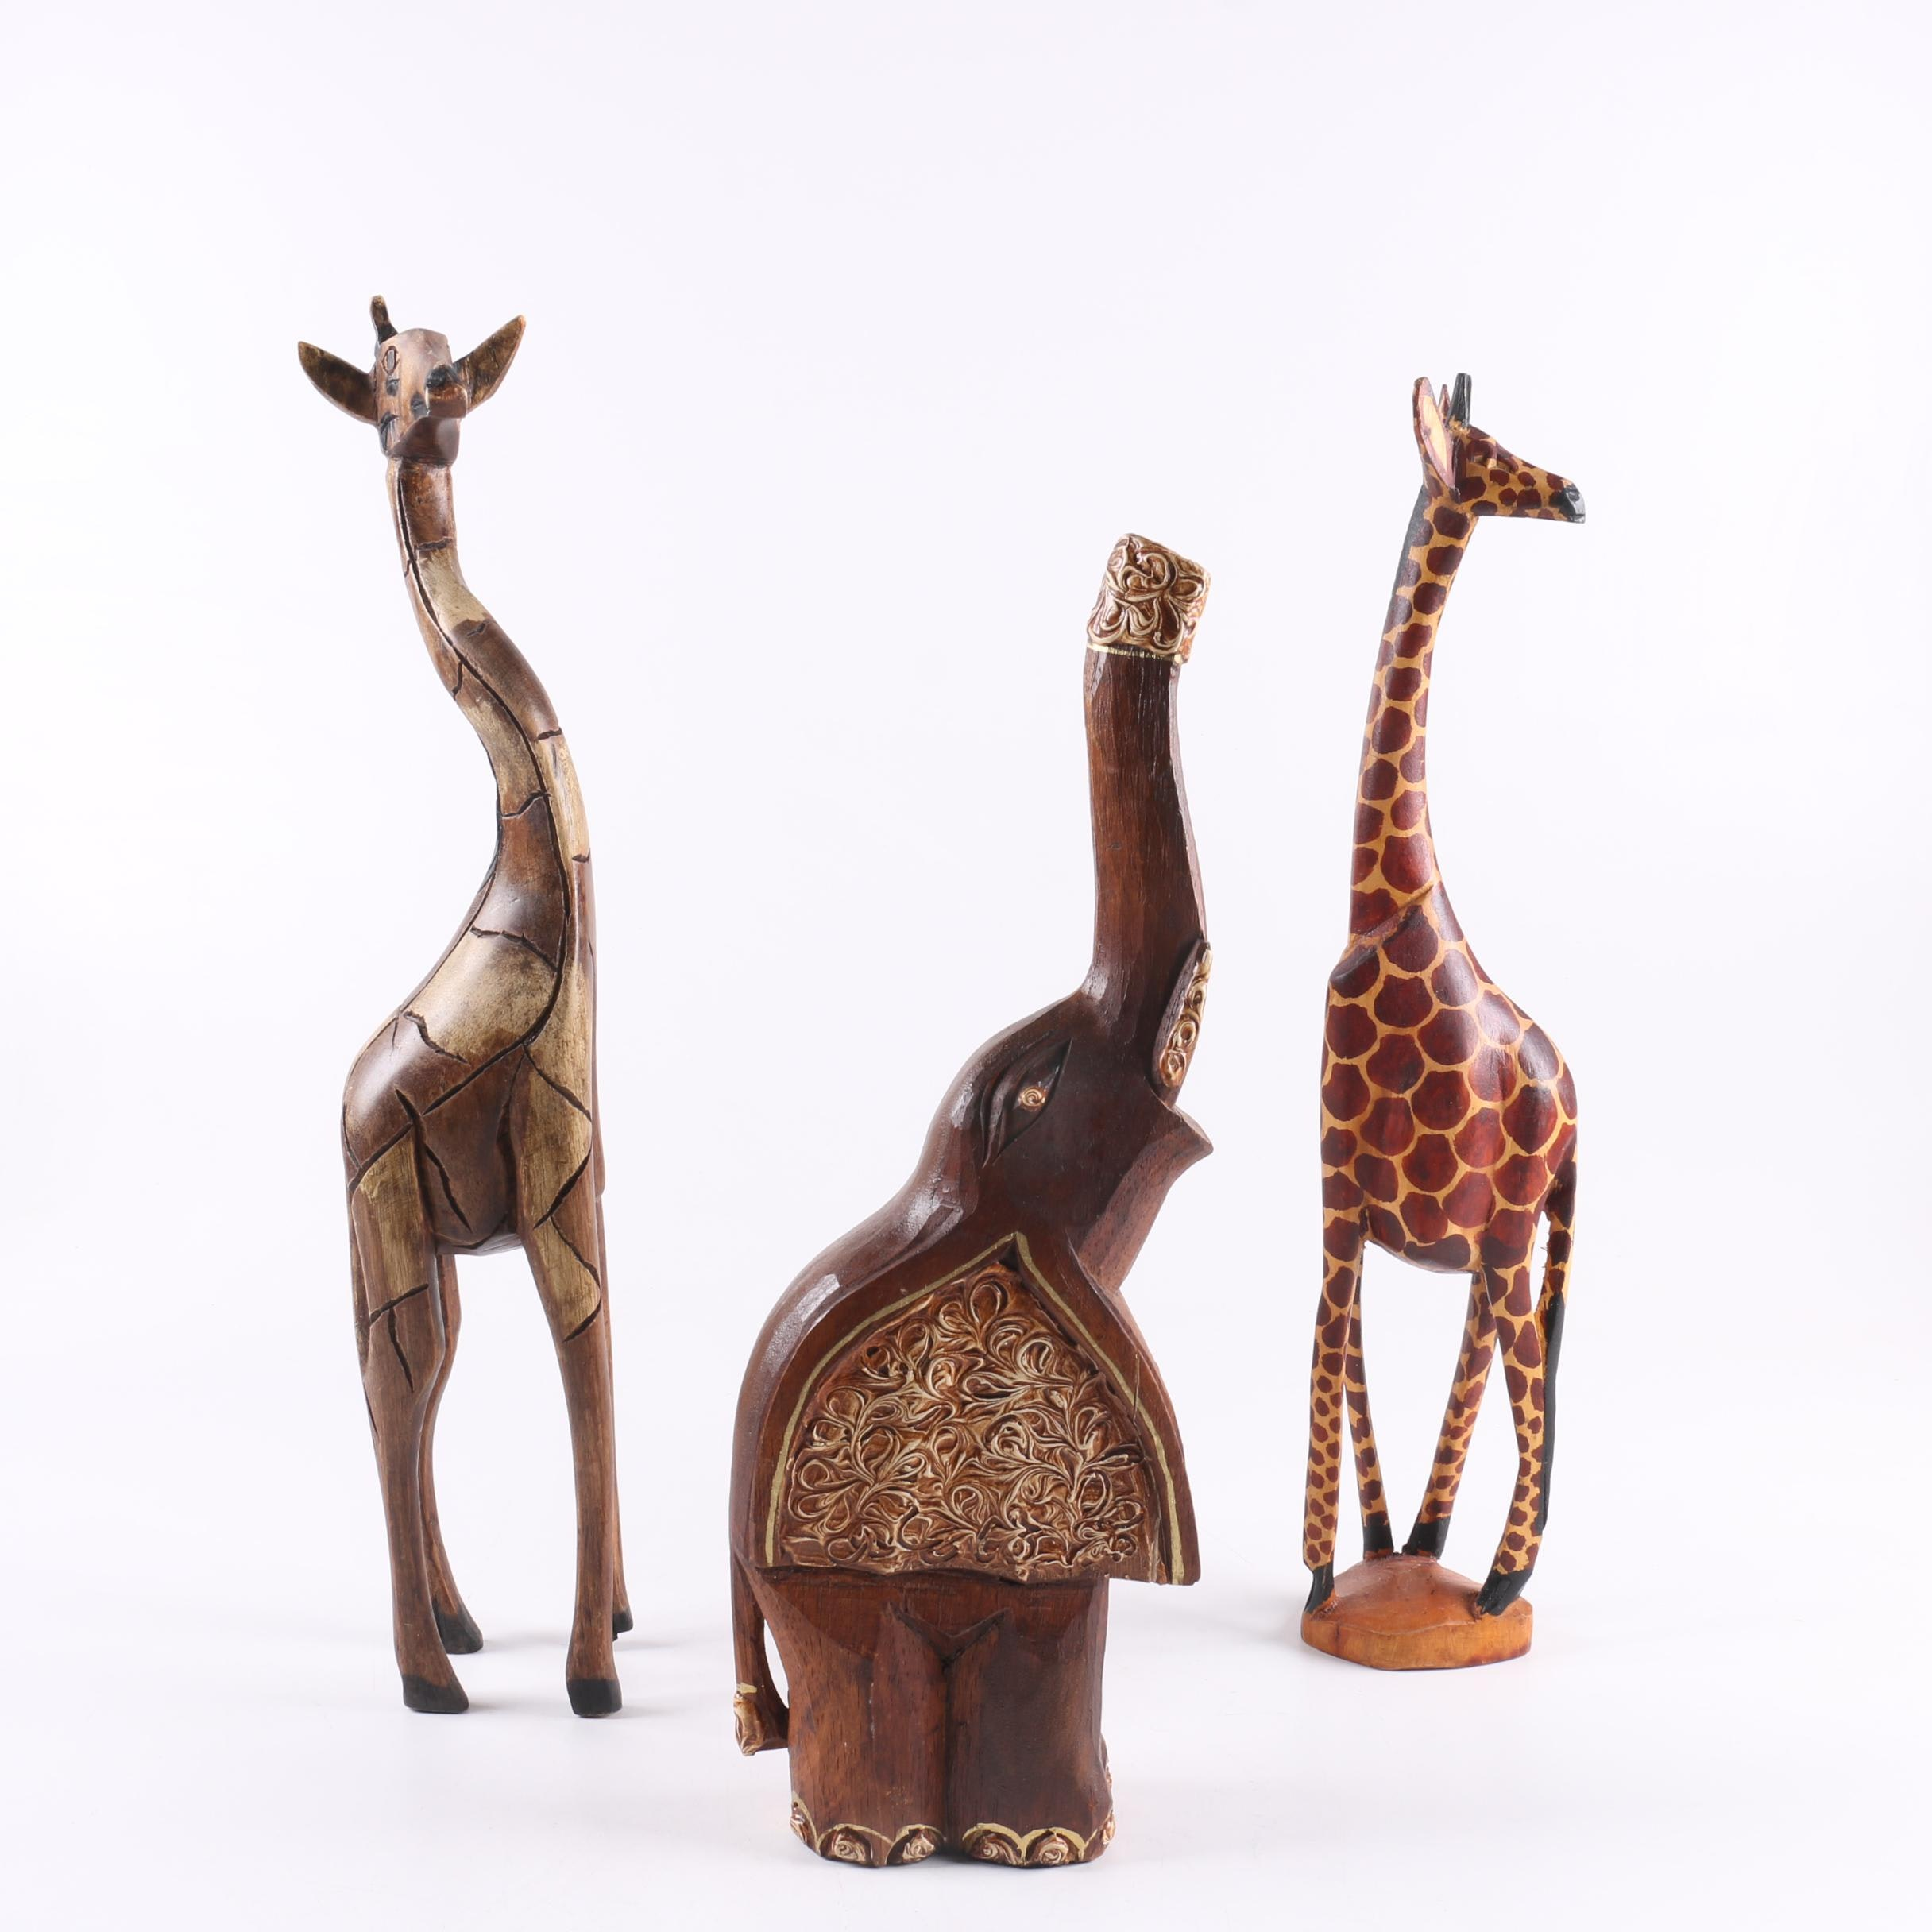 Carved Wooden Animal Figurines